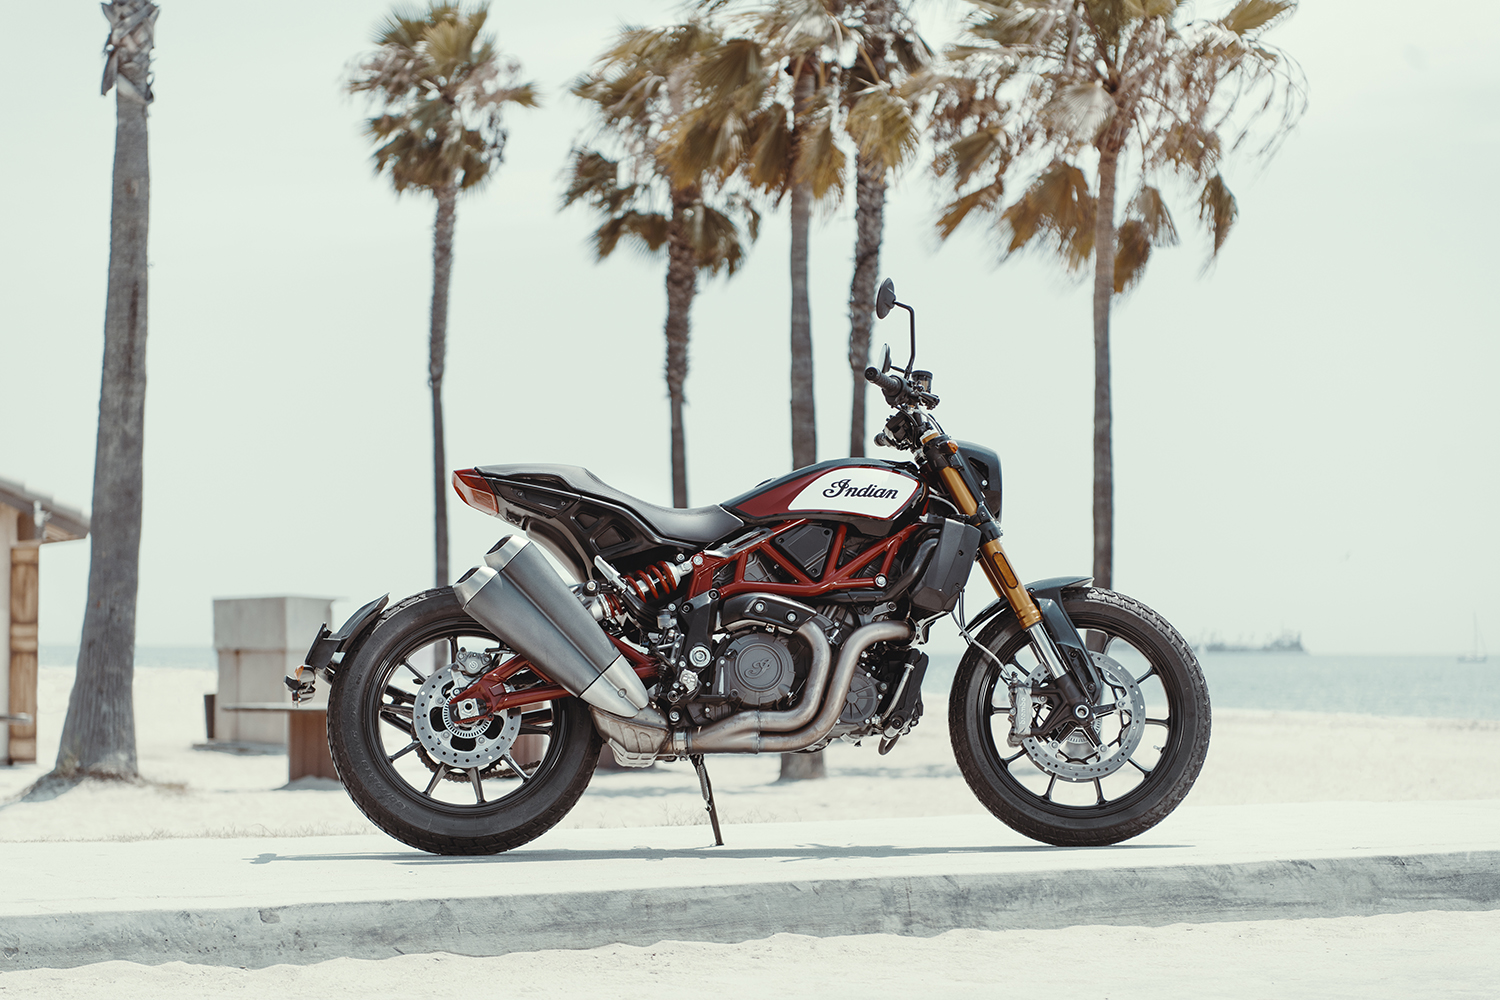 2019 Indian FTR 1200 and FTR 1200 S: Indian\'s Flat Track Inspired ...